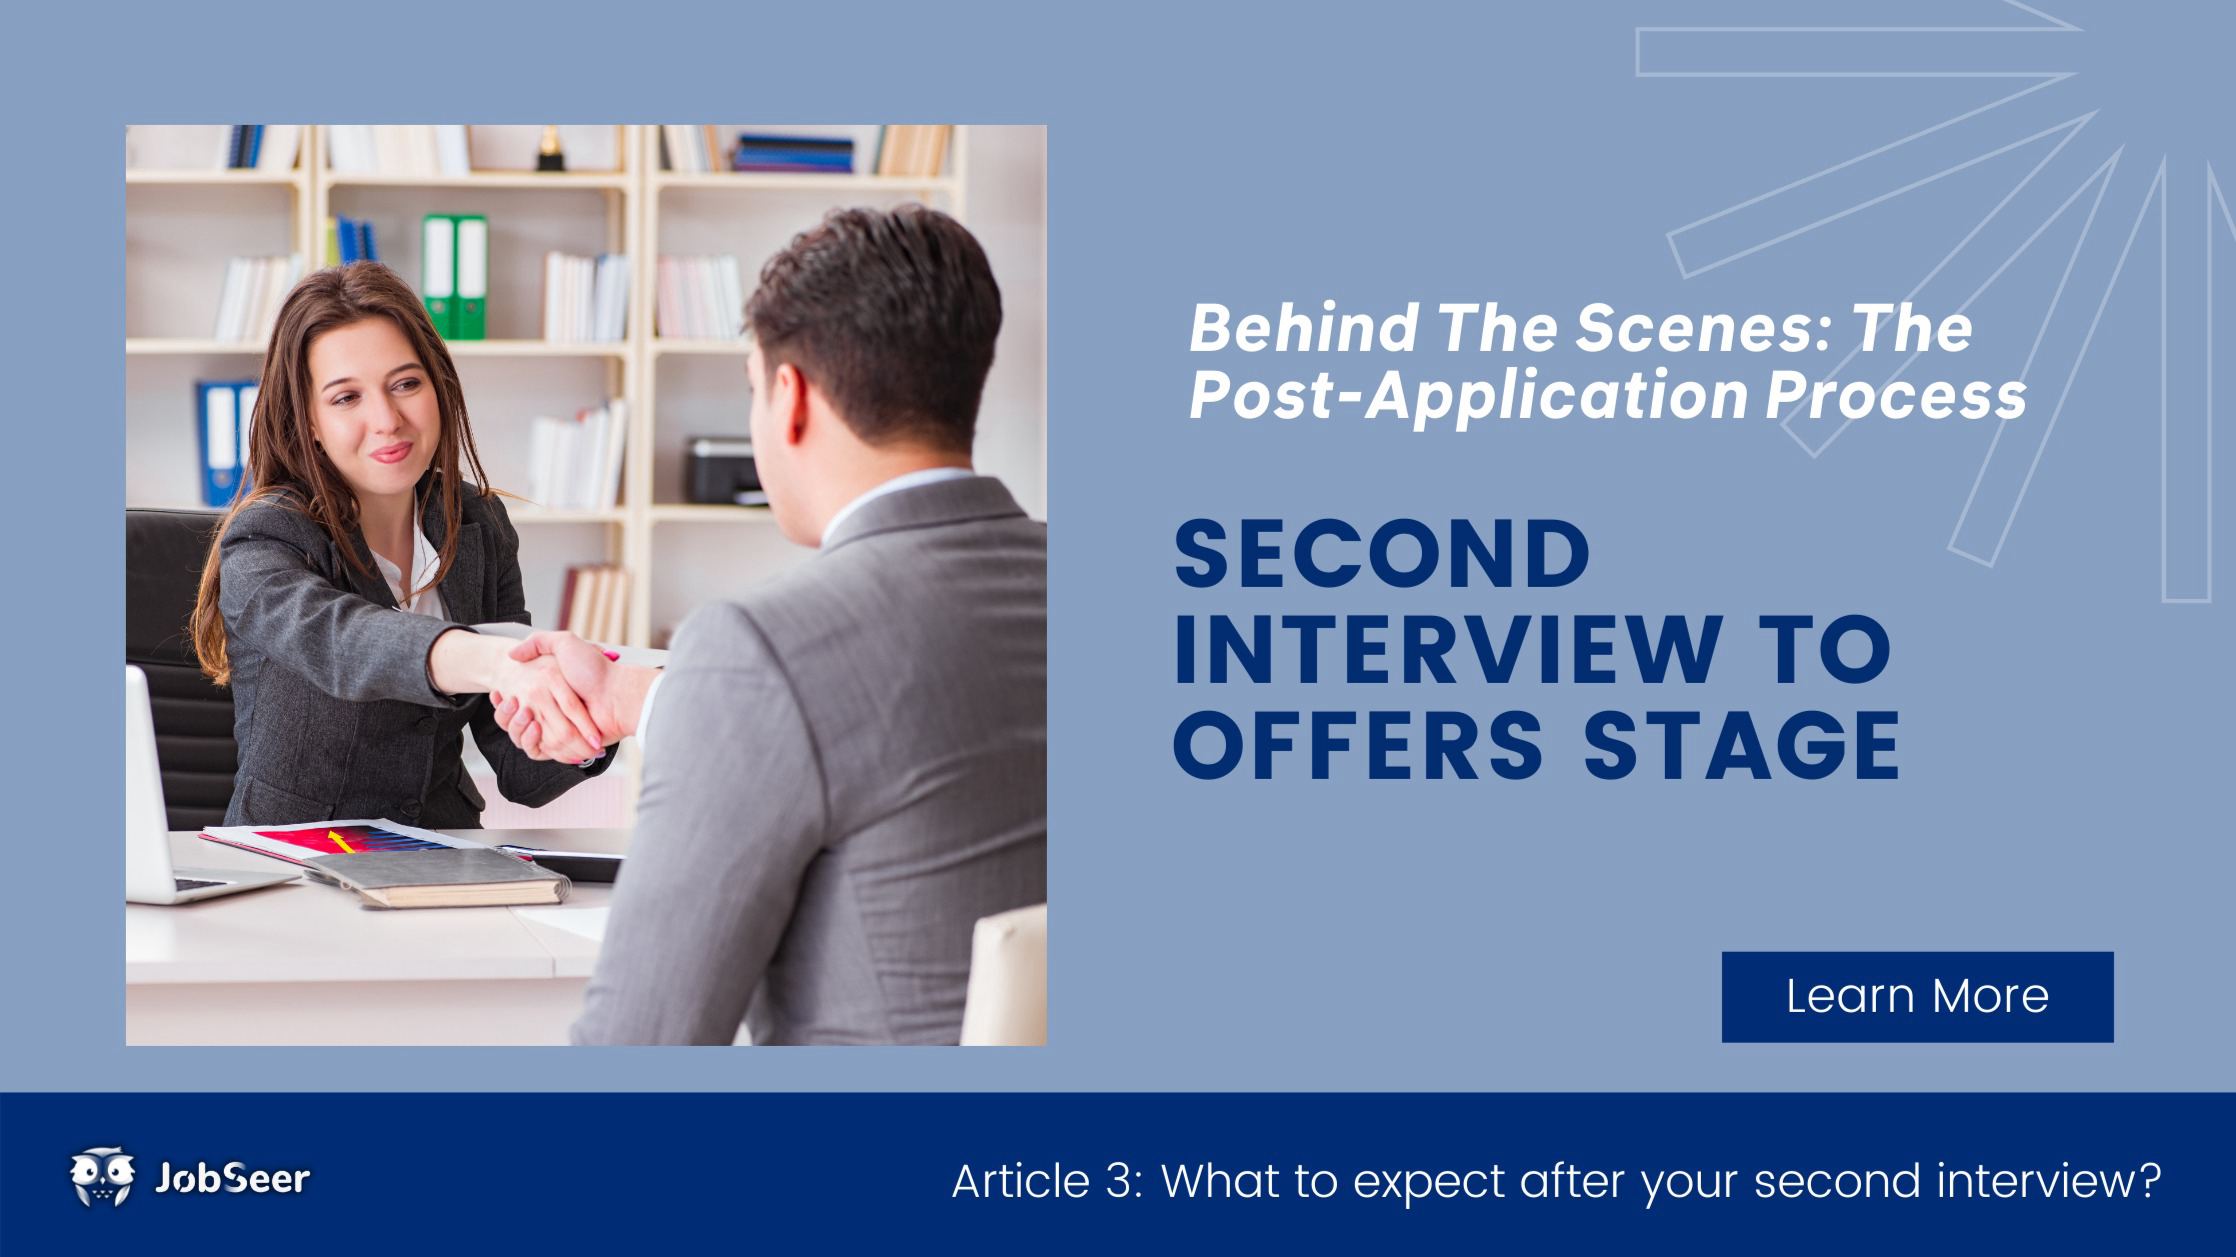 behind-the-scenes-of-the-post-application-process-second-interview-to-offers-stage